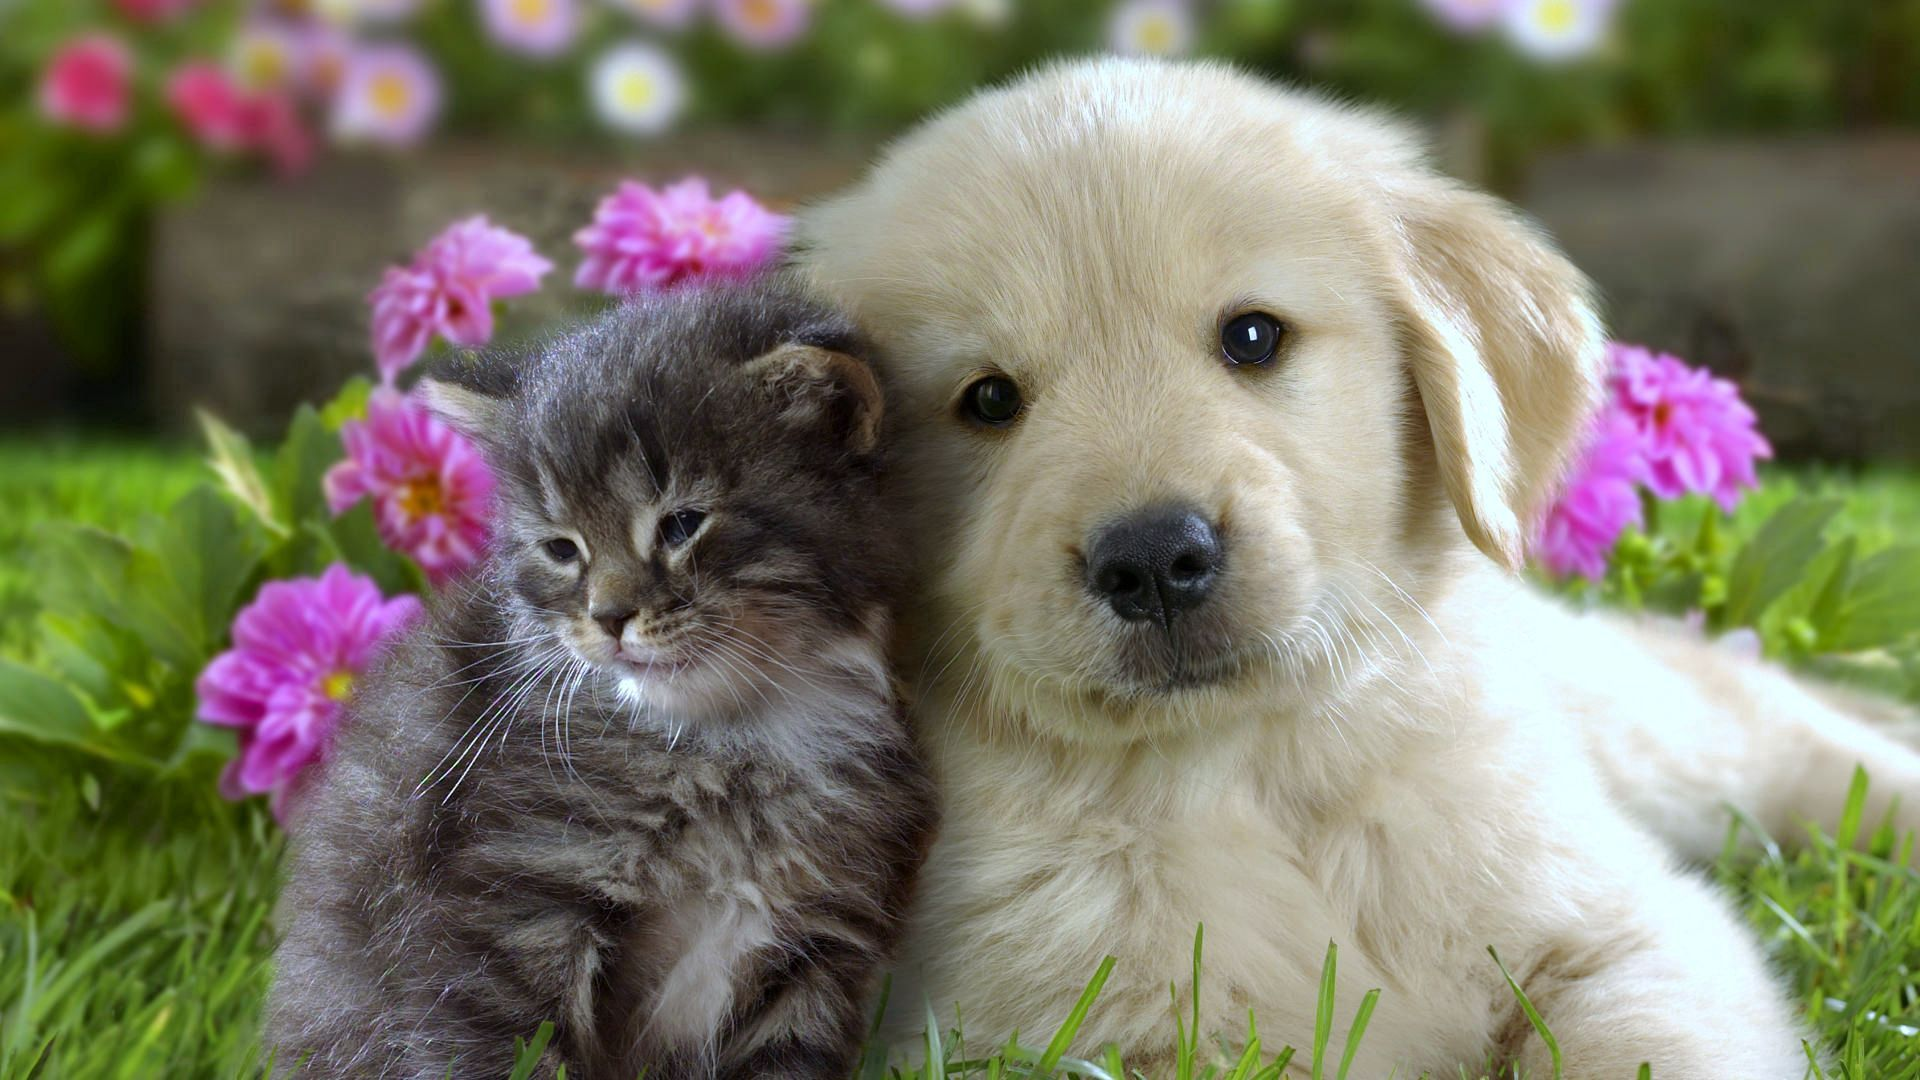 112766 Screensavers and Wallpapers Kitten for phone. Download Animals, Flowers, Grass, Kitty, Kitten, Muzzle, Puppy pictures for free